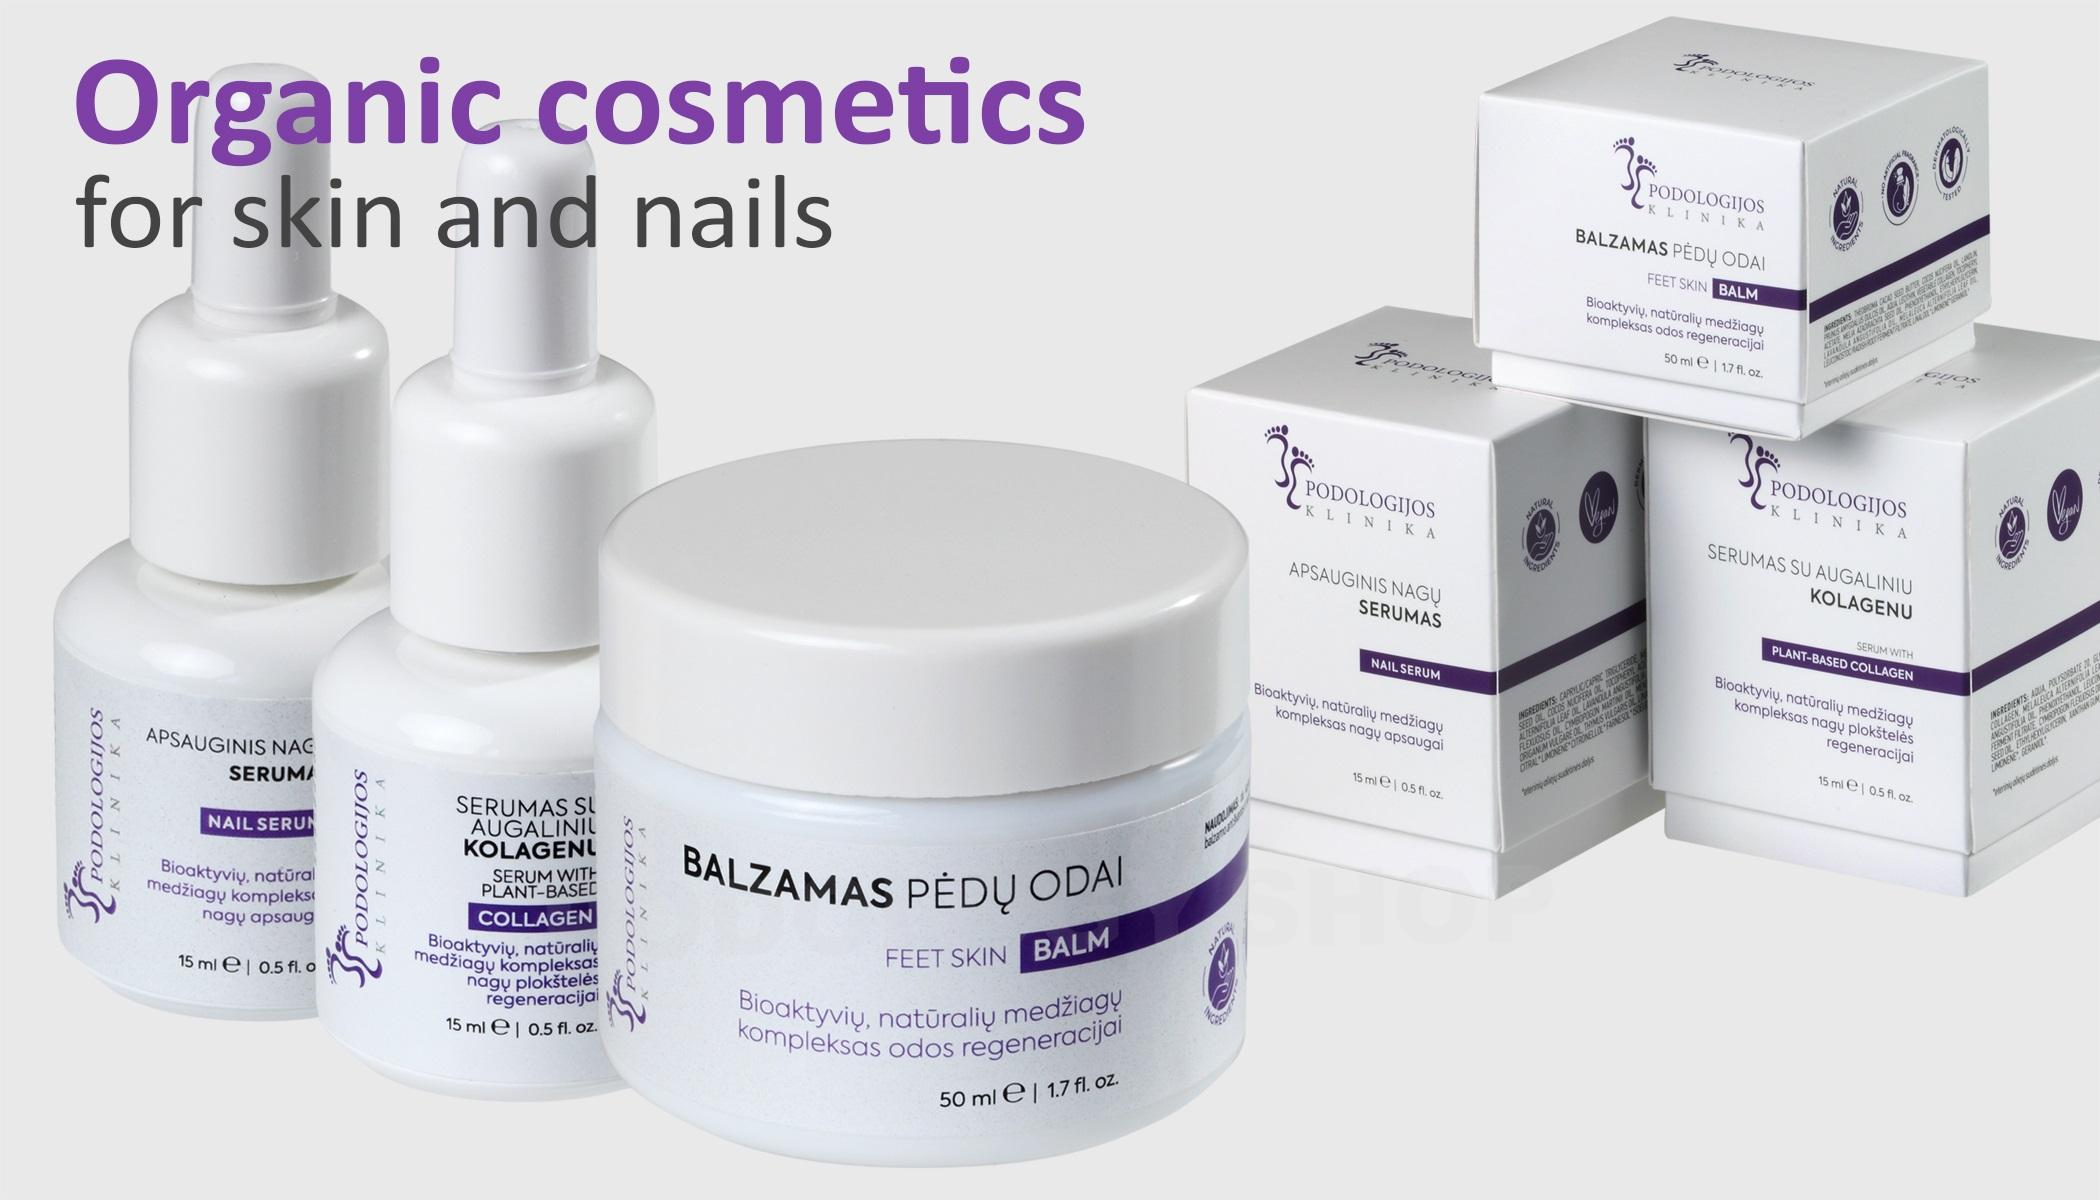 Organic cosmetics for skin and nails